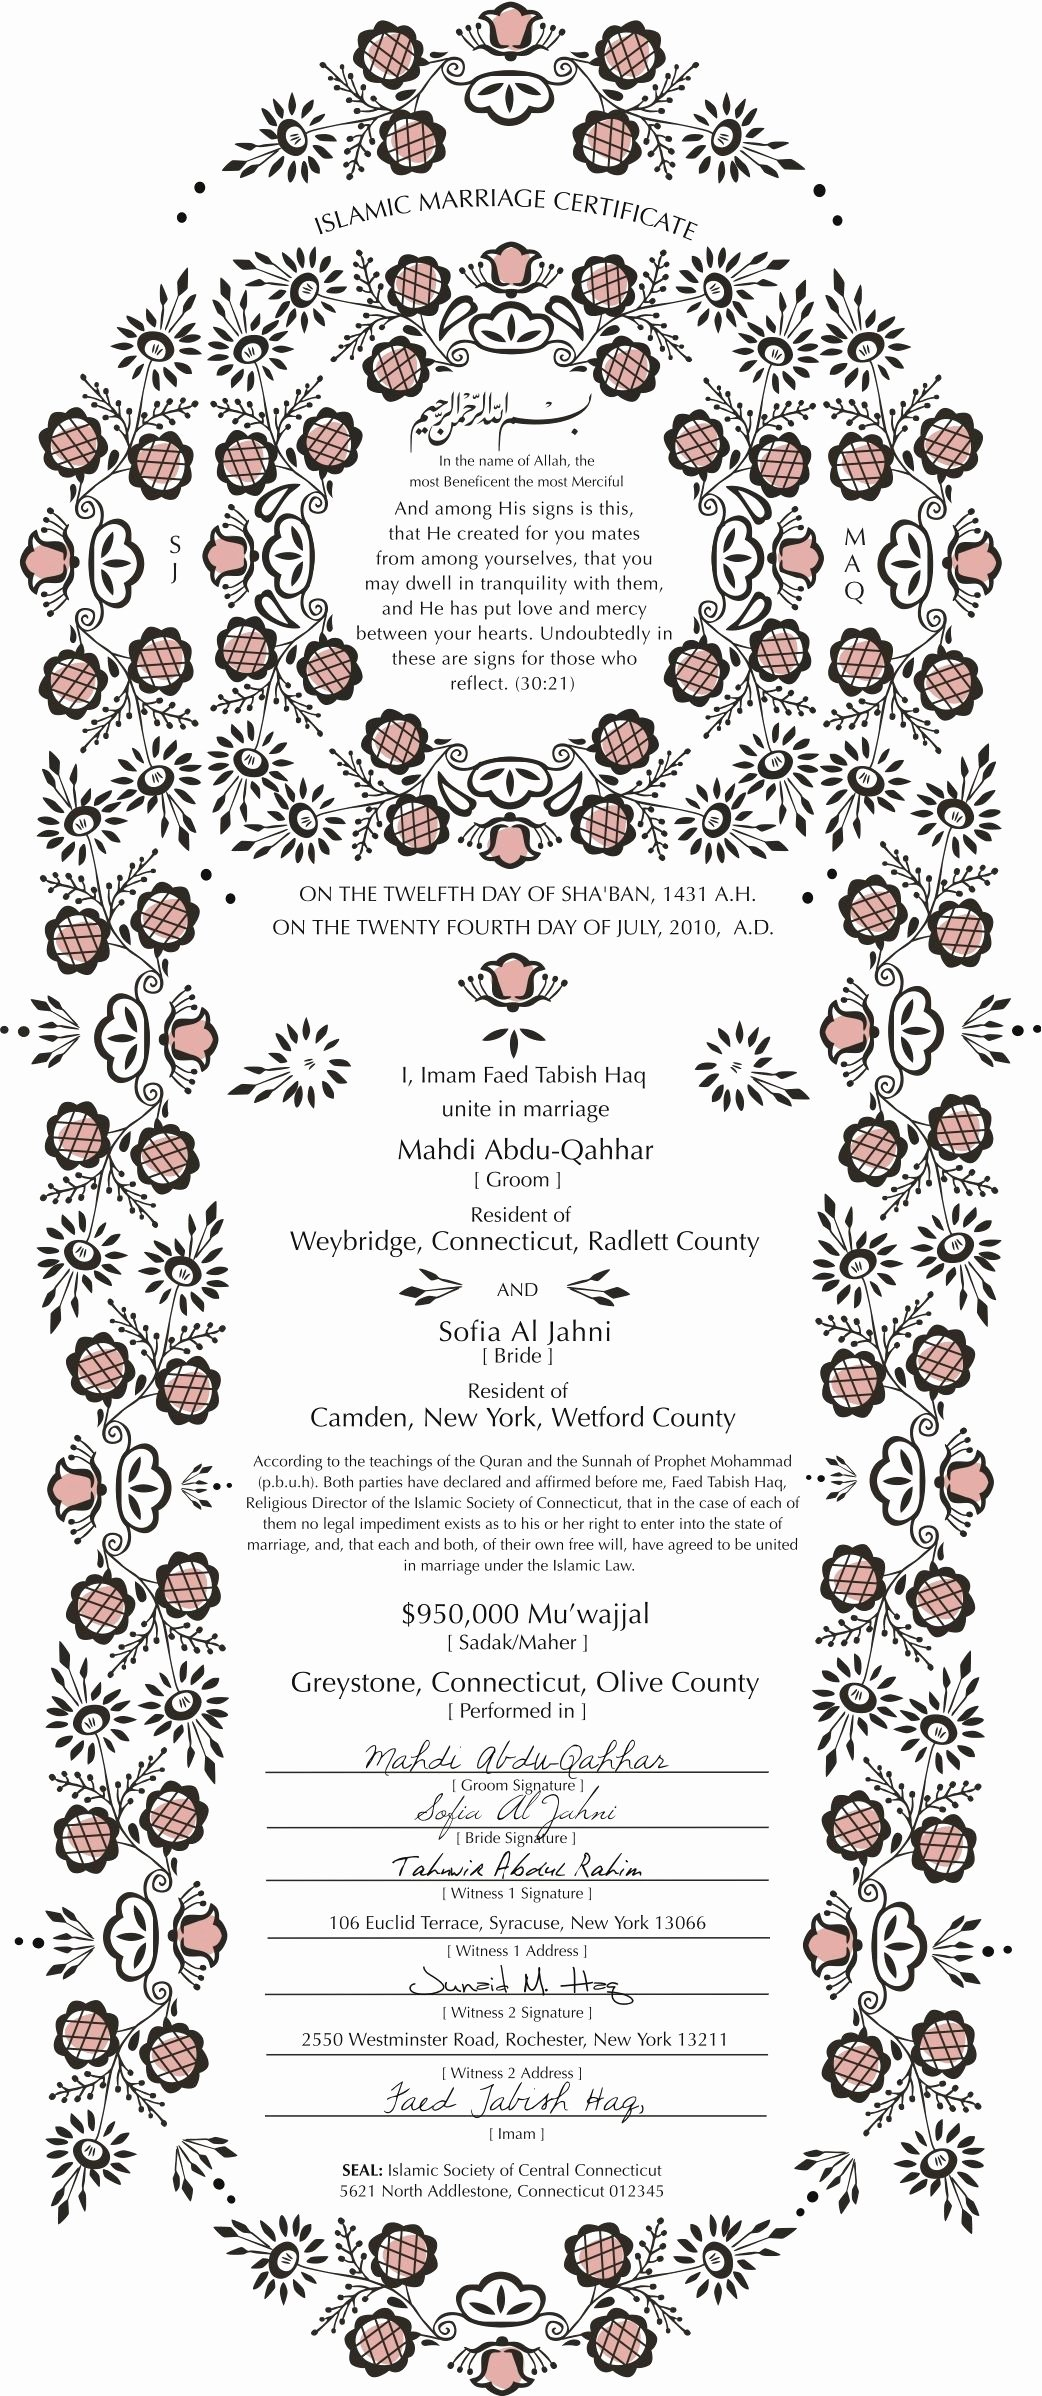 Islamic Marriage Certificate Template Awesome Nikkahanama islamic Marriage Certificate Design Example